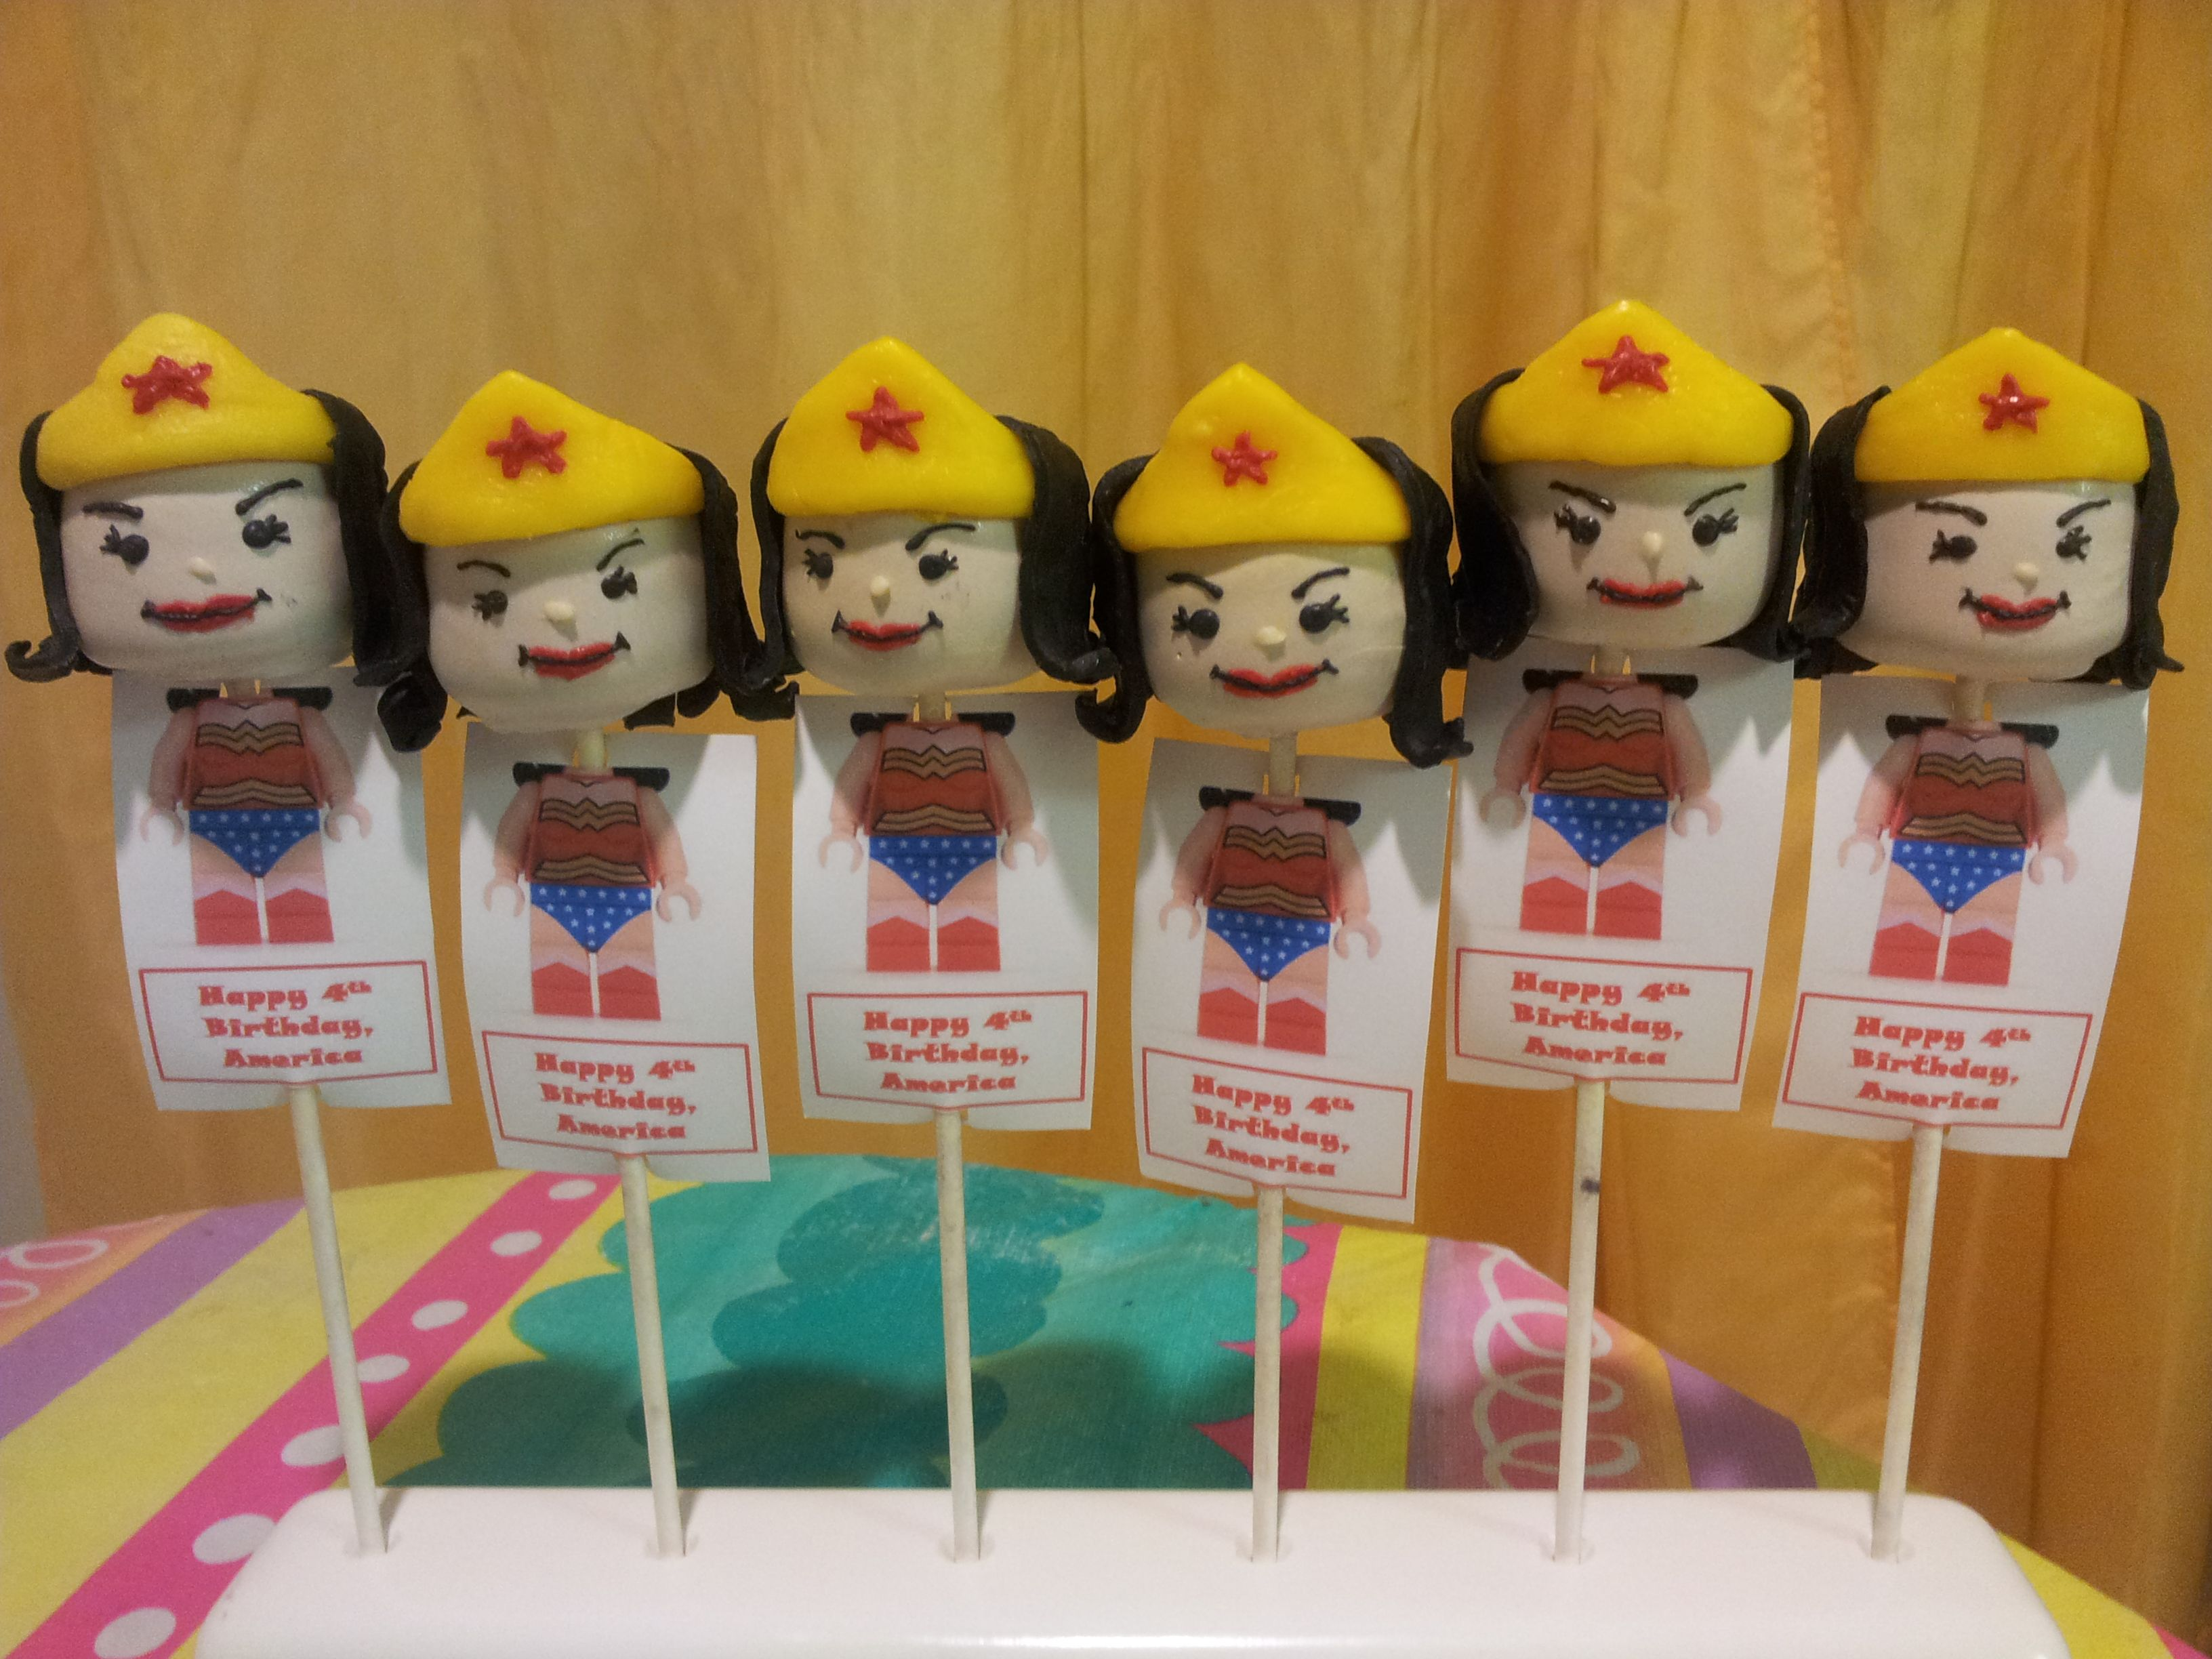 Wonder Woman 0 Cake Ideas and Designs